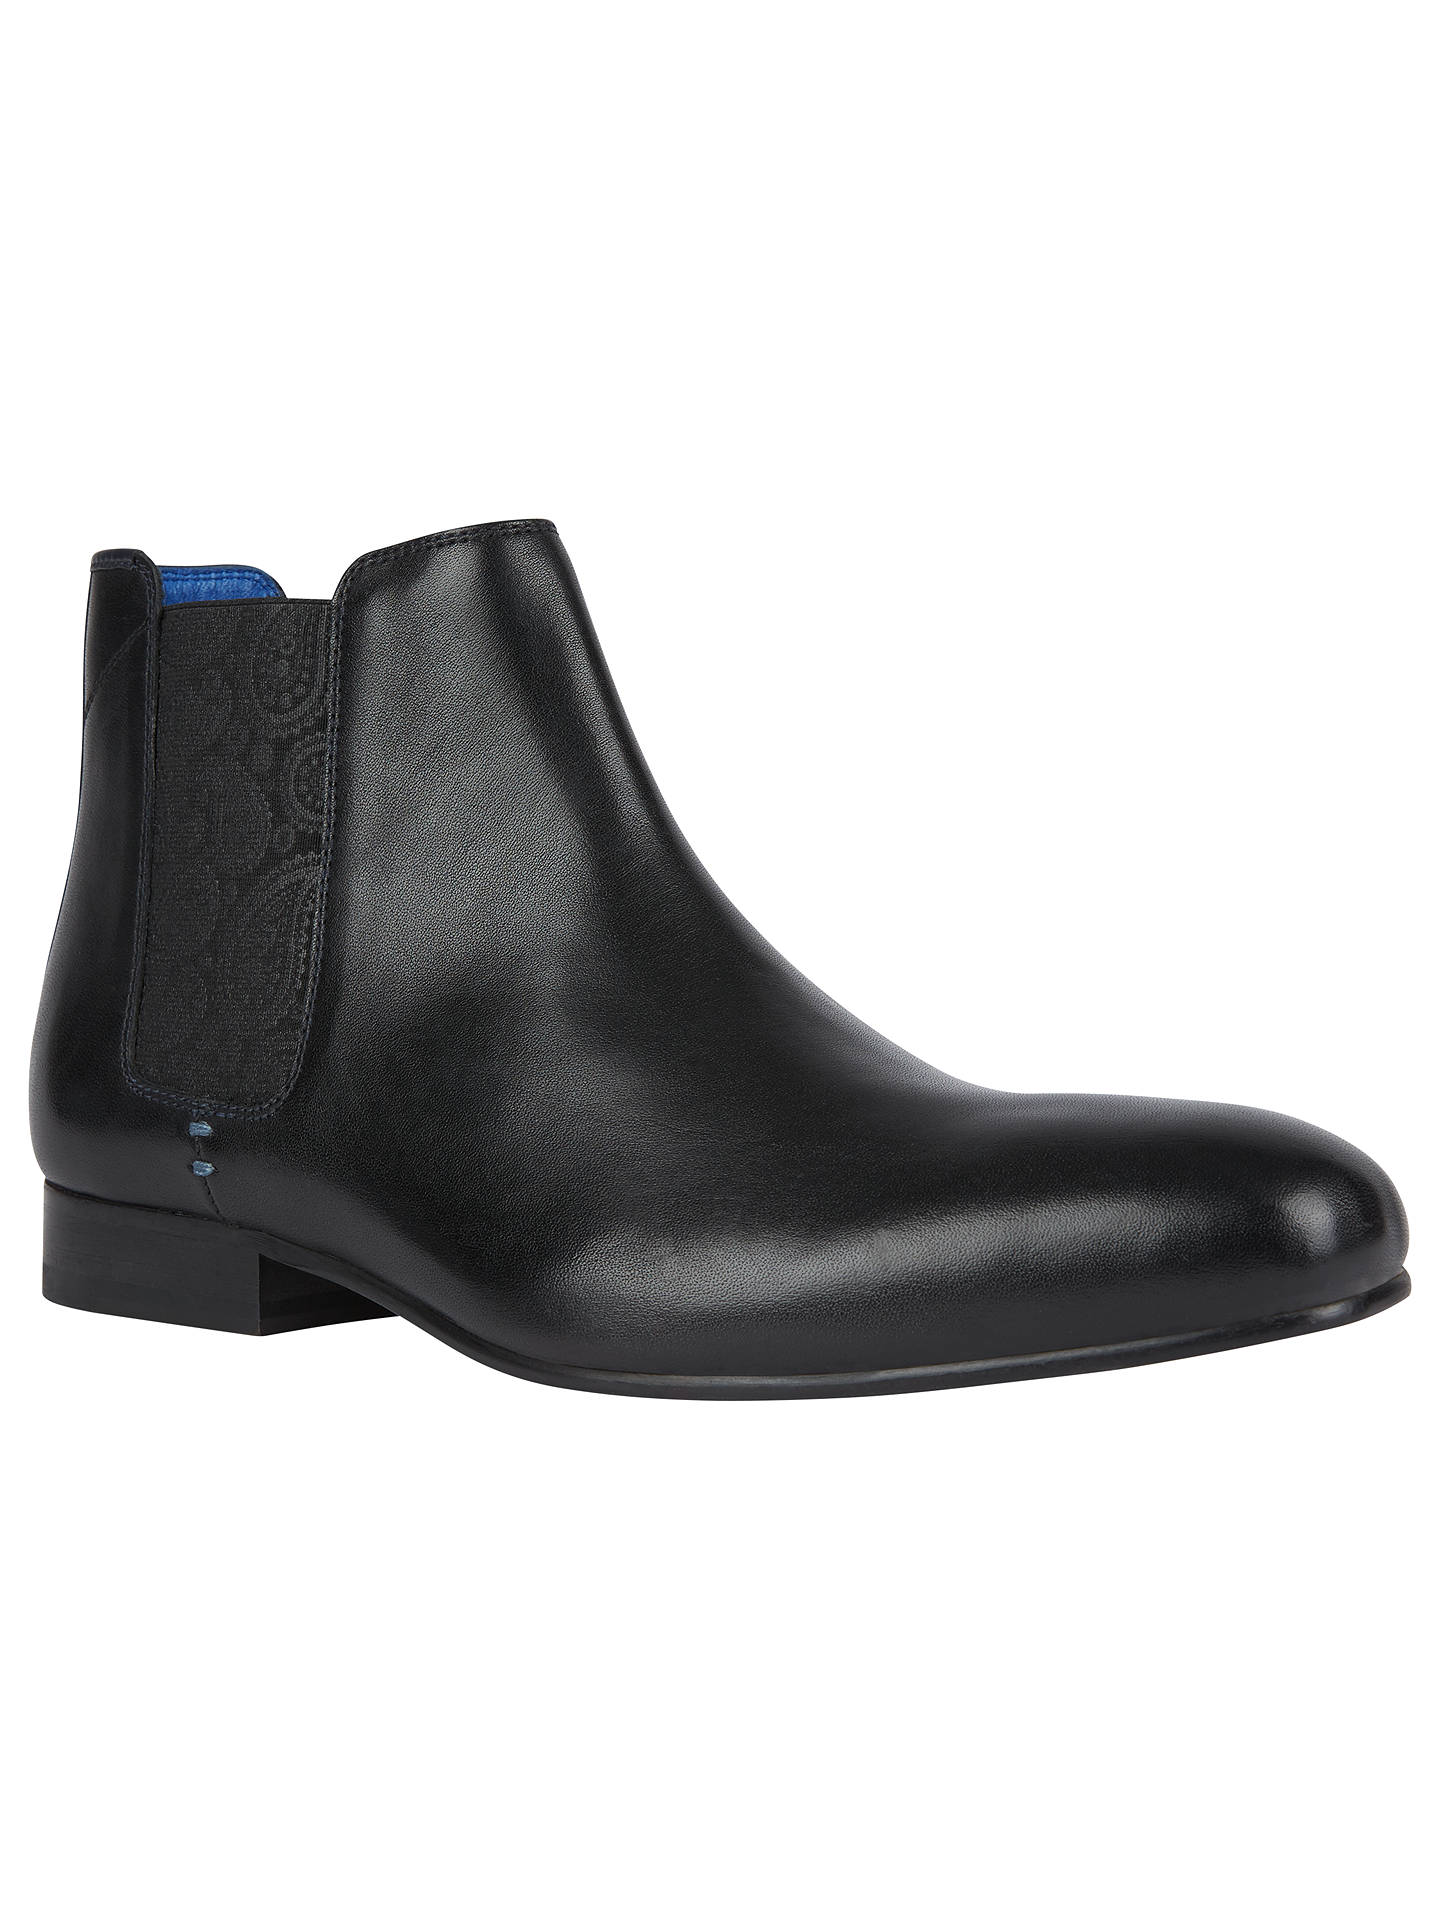 df8c5dd06660 Ted Baker Kayto Leather Chelsea Boots at John Lewis   Partners